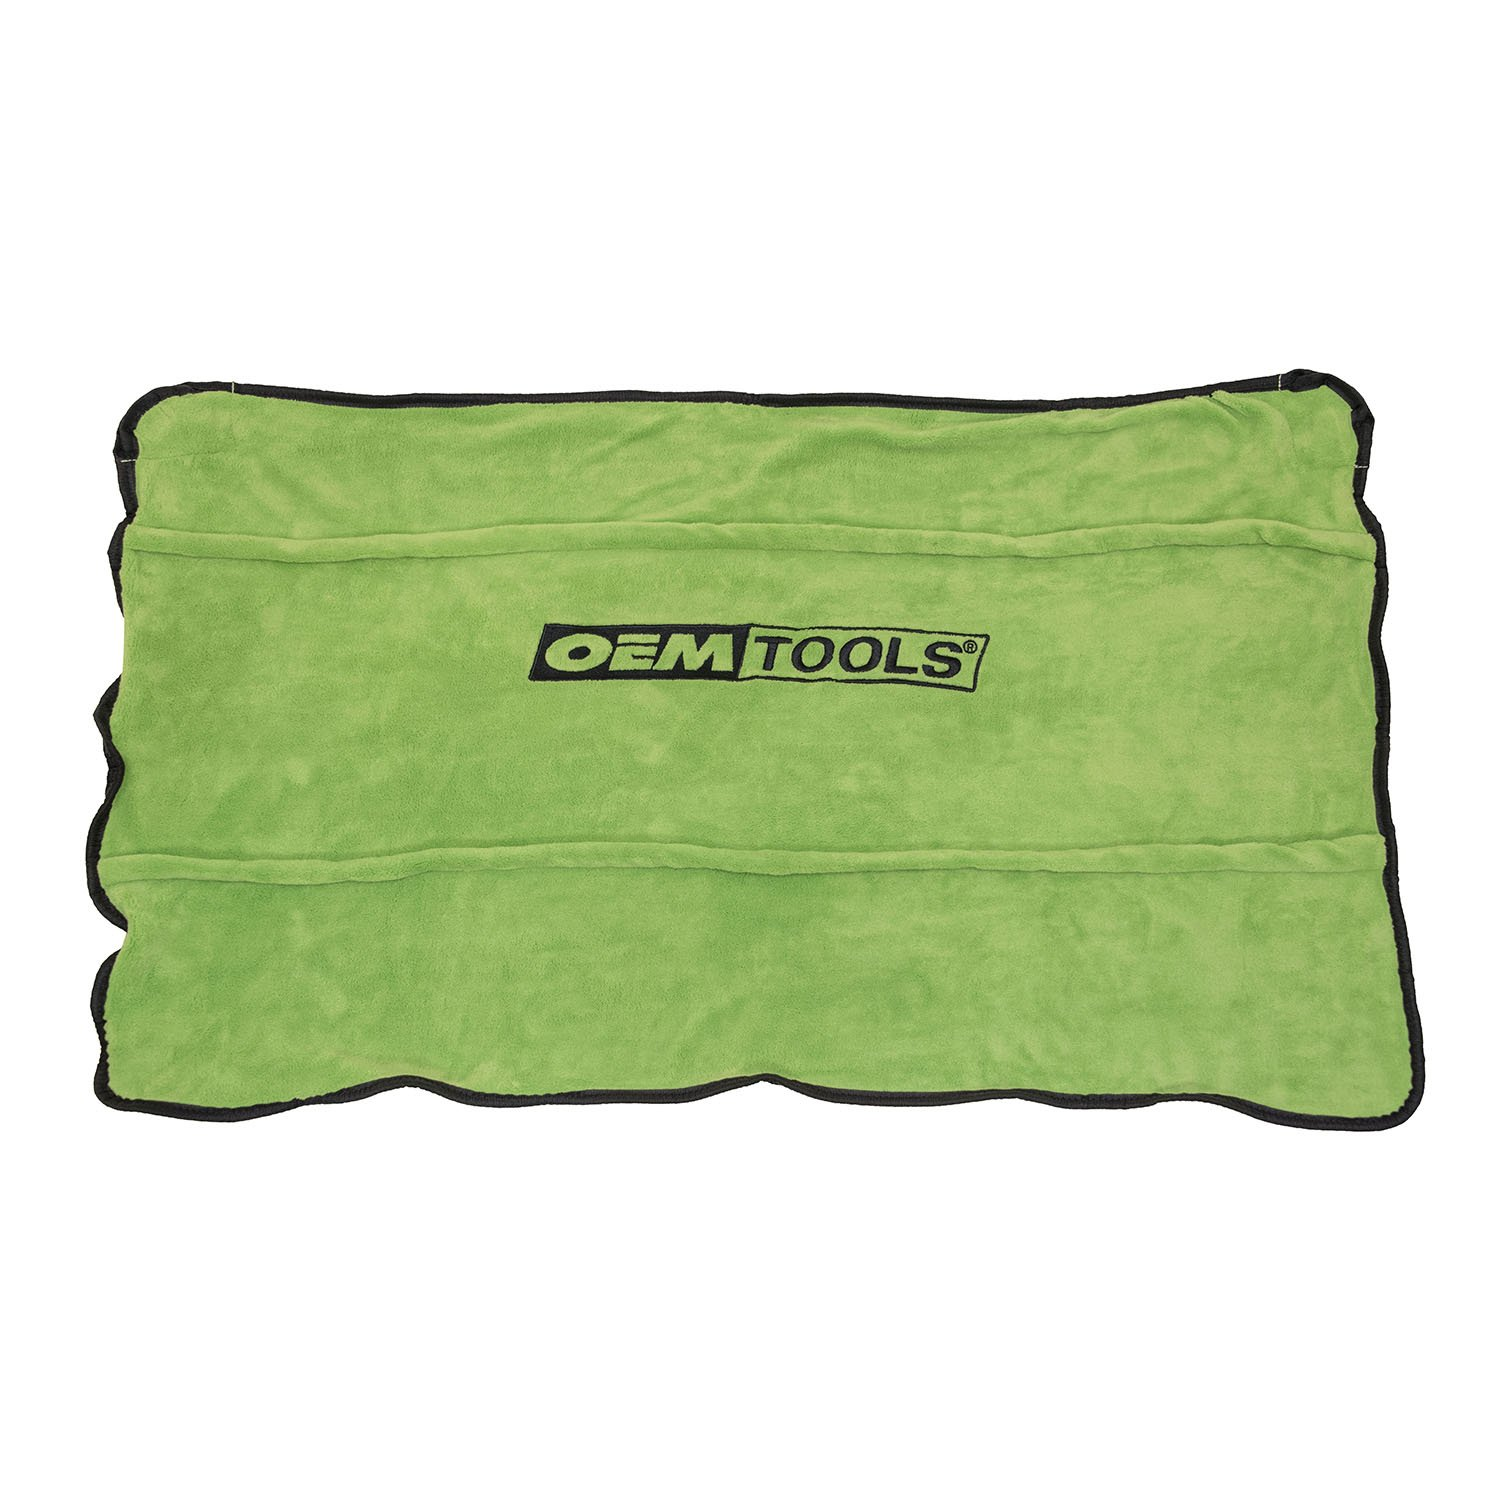 OEMTOOLS 24899 Soft Fleece Fender Cover GREAT NECK